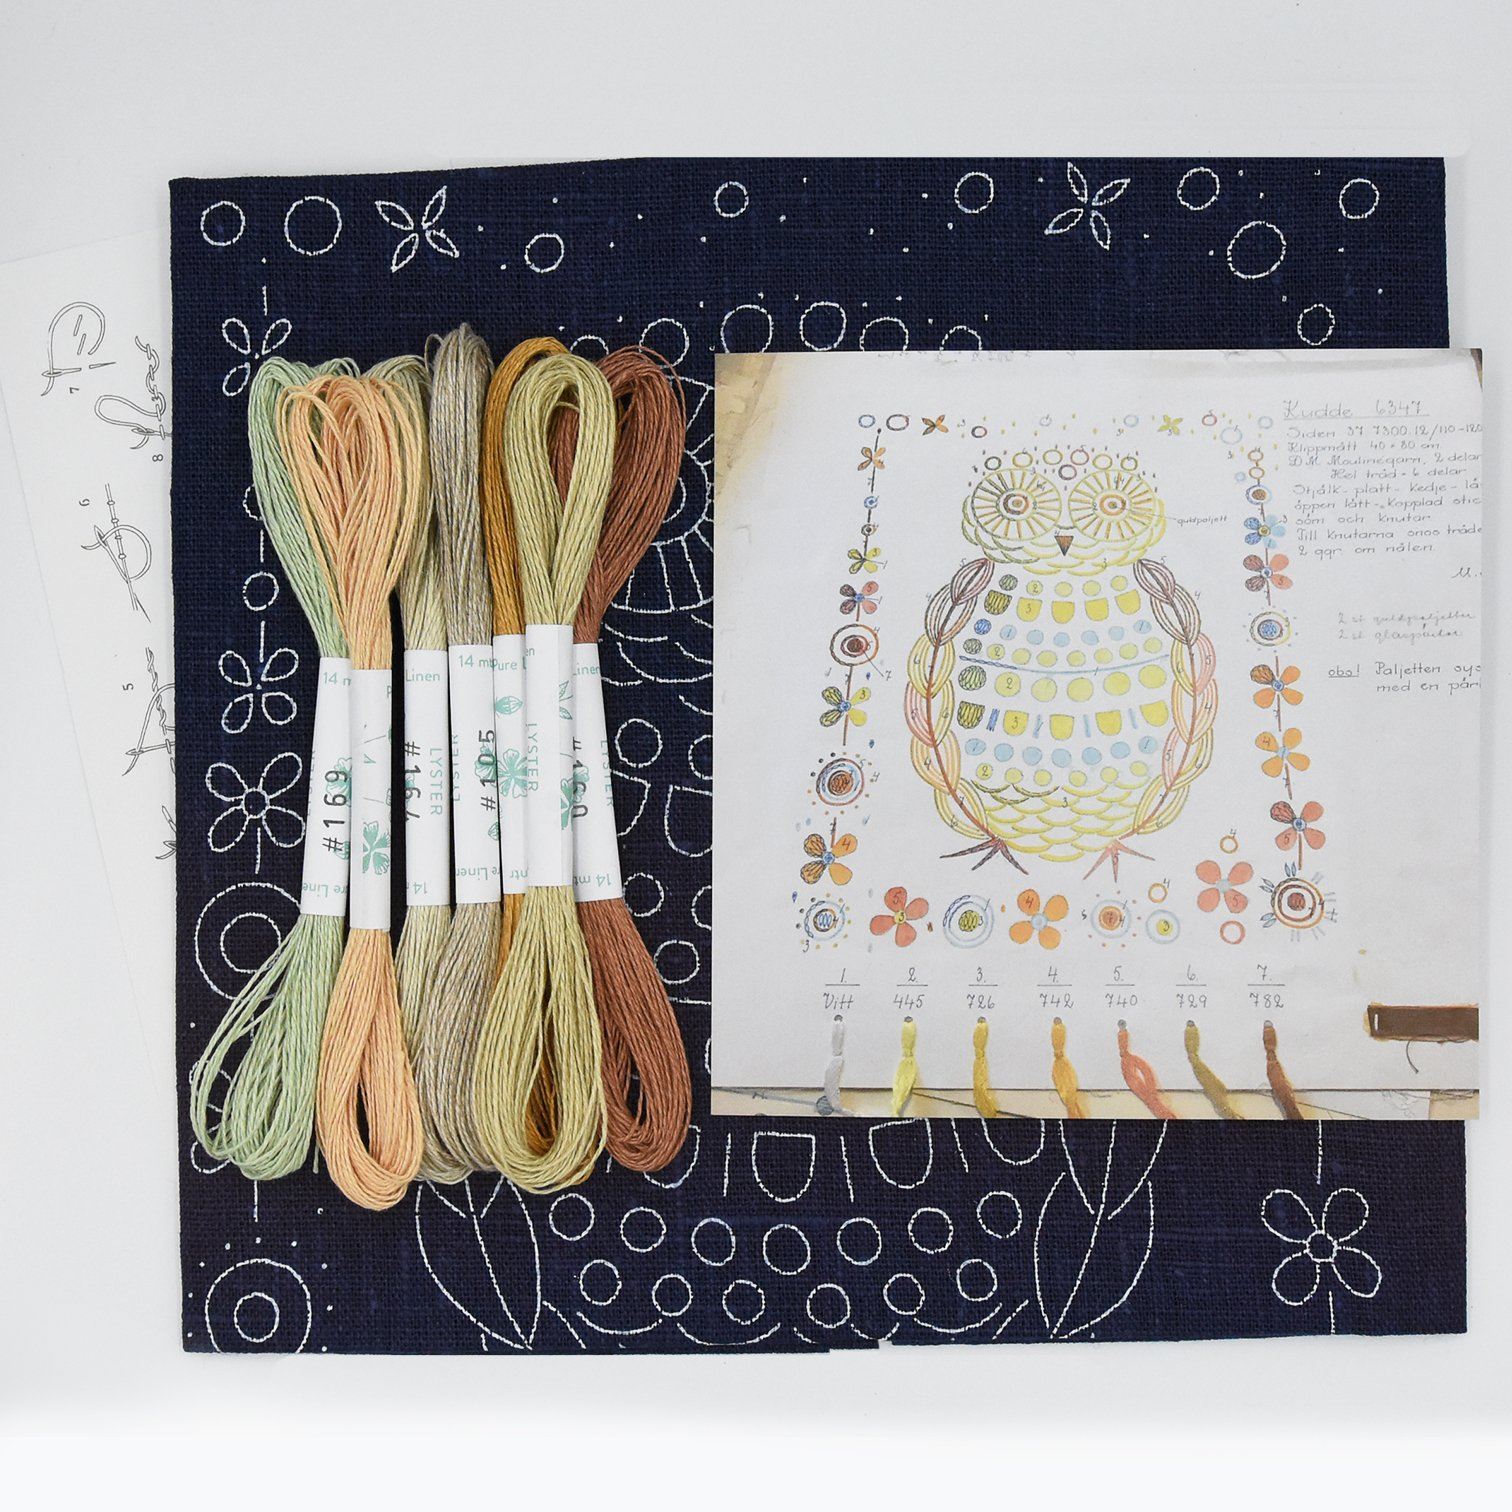 Linladan - Owl 6347 - Swedish Embroidery Kit 10